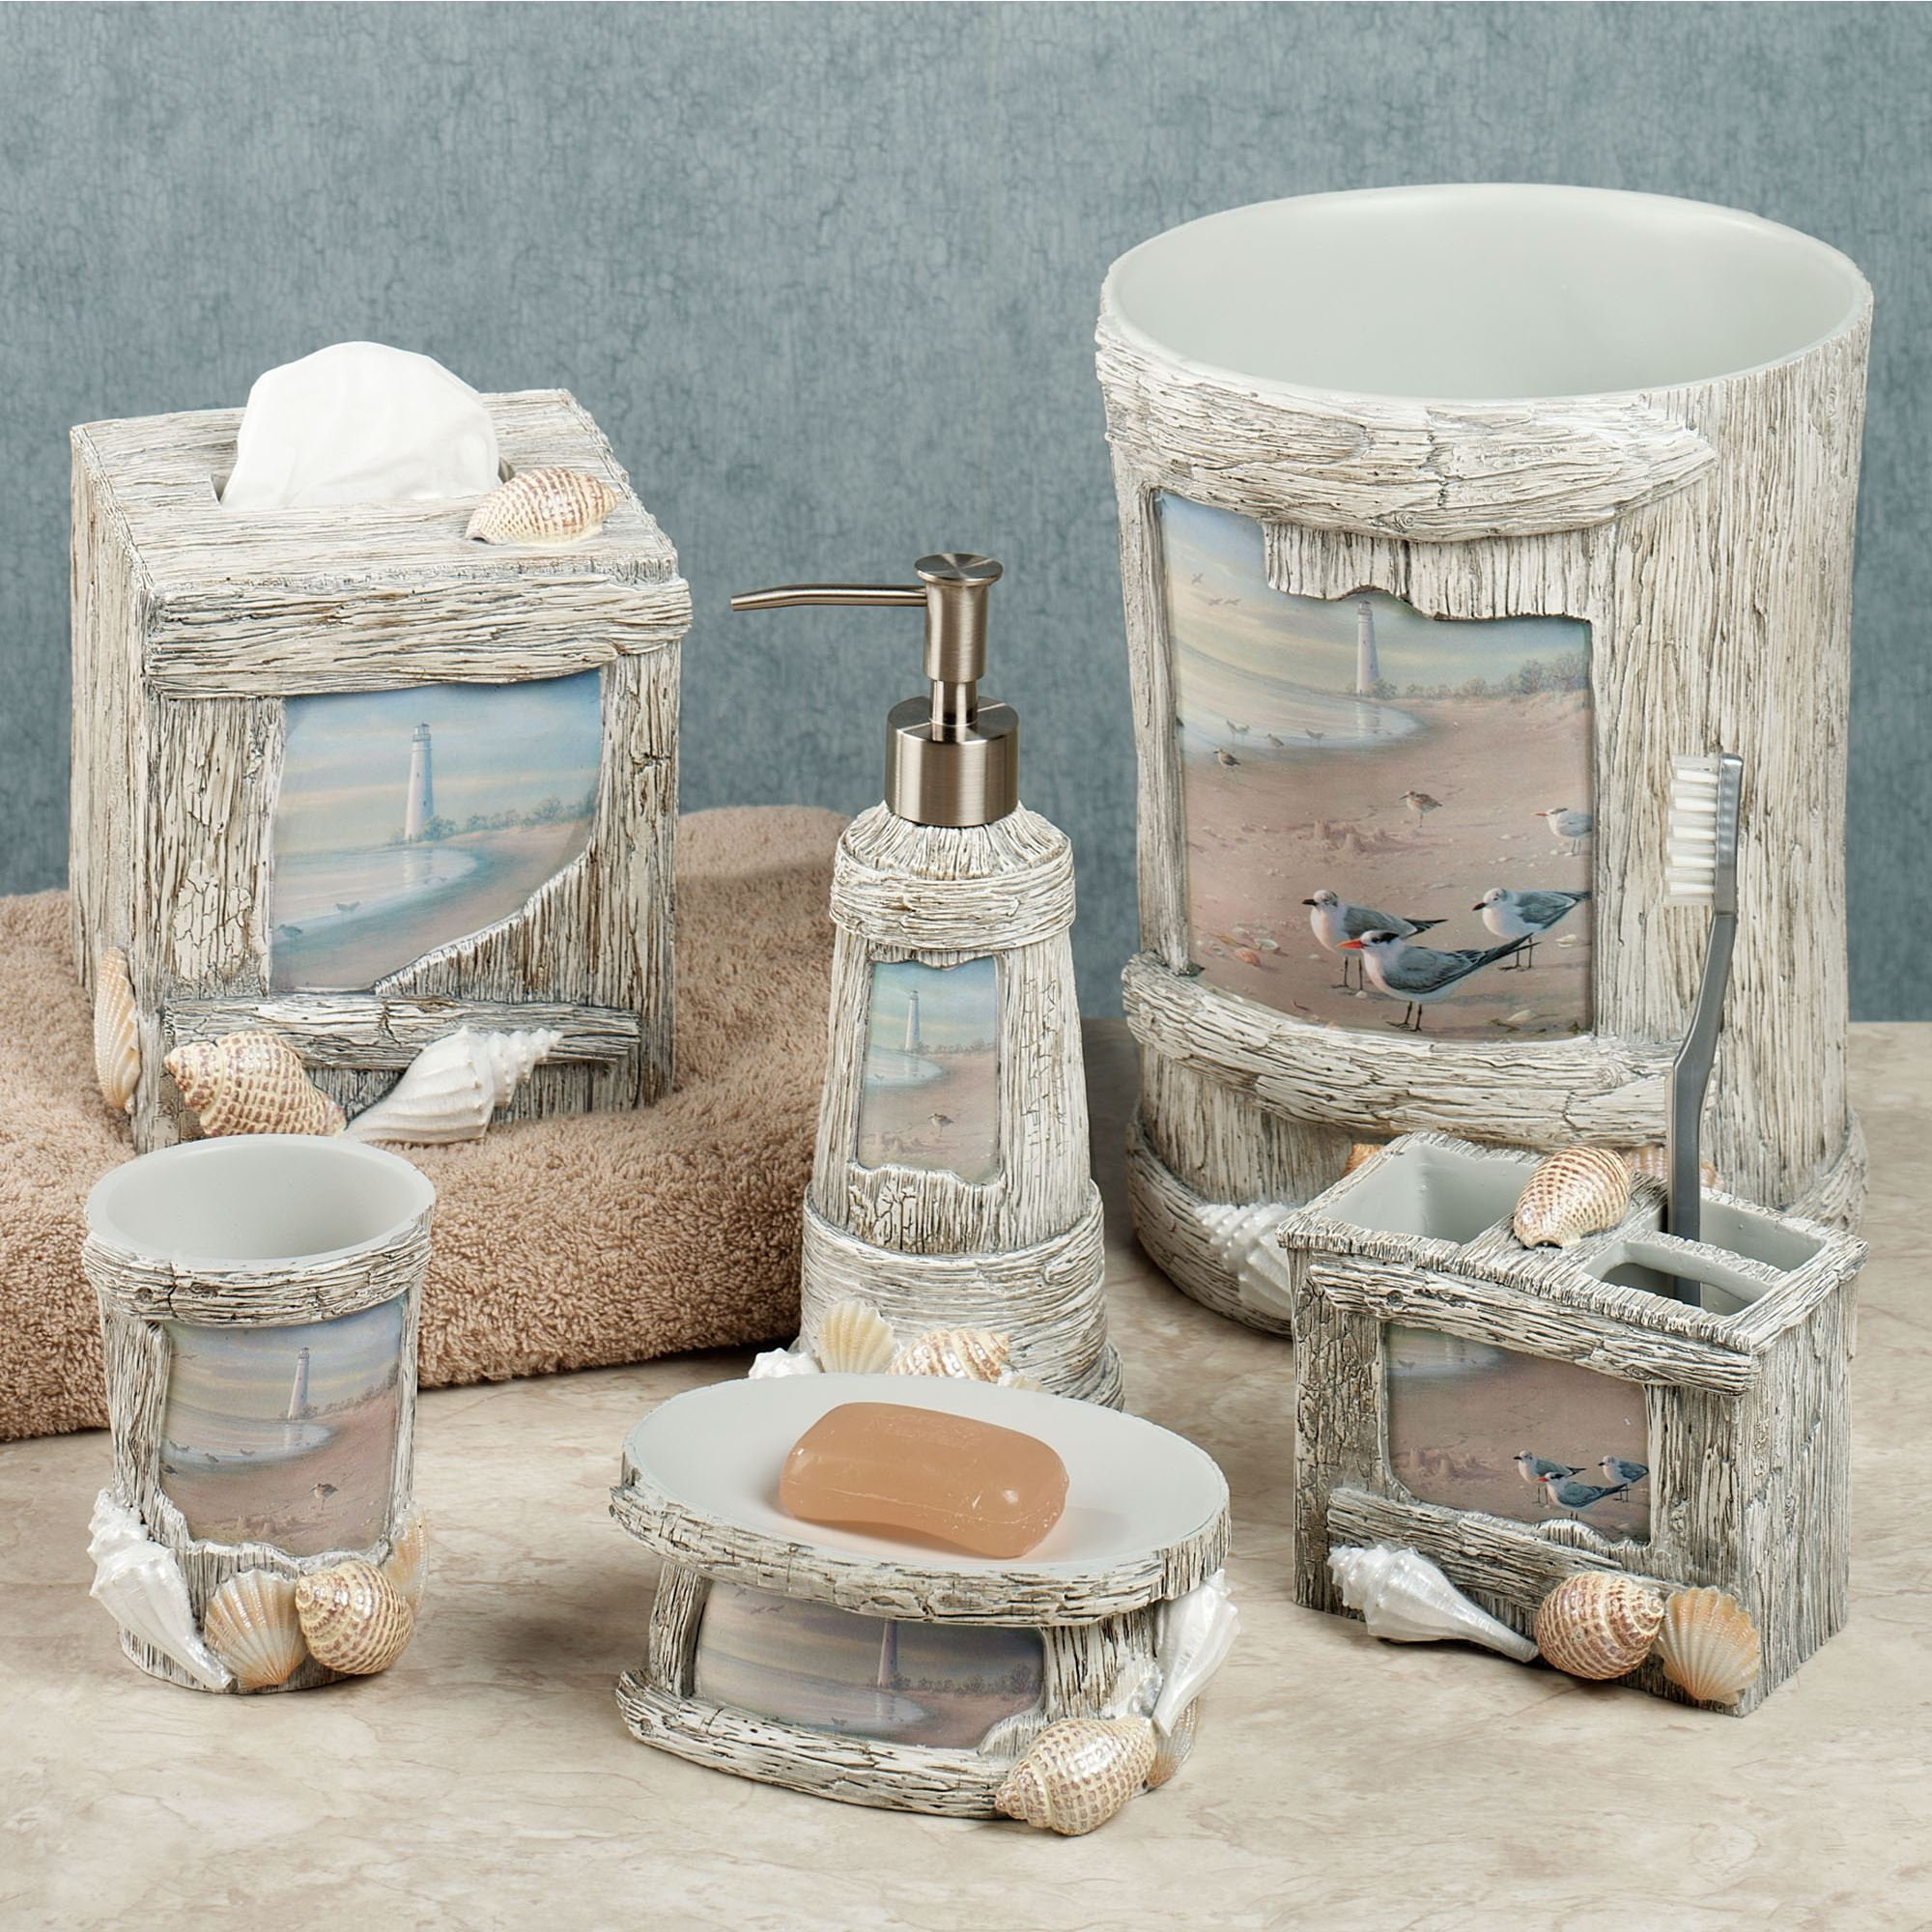 At the beach bath accessories for Accessoires pour salle de bain